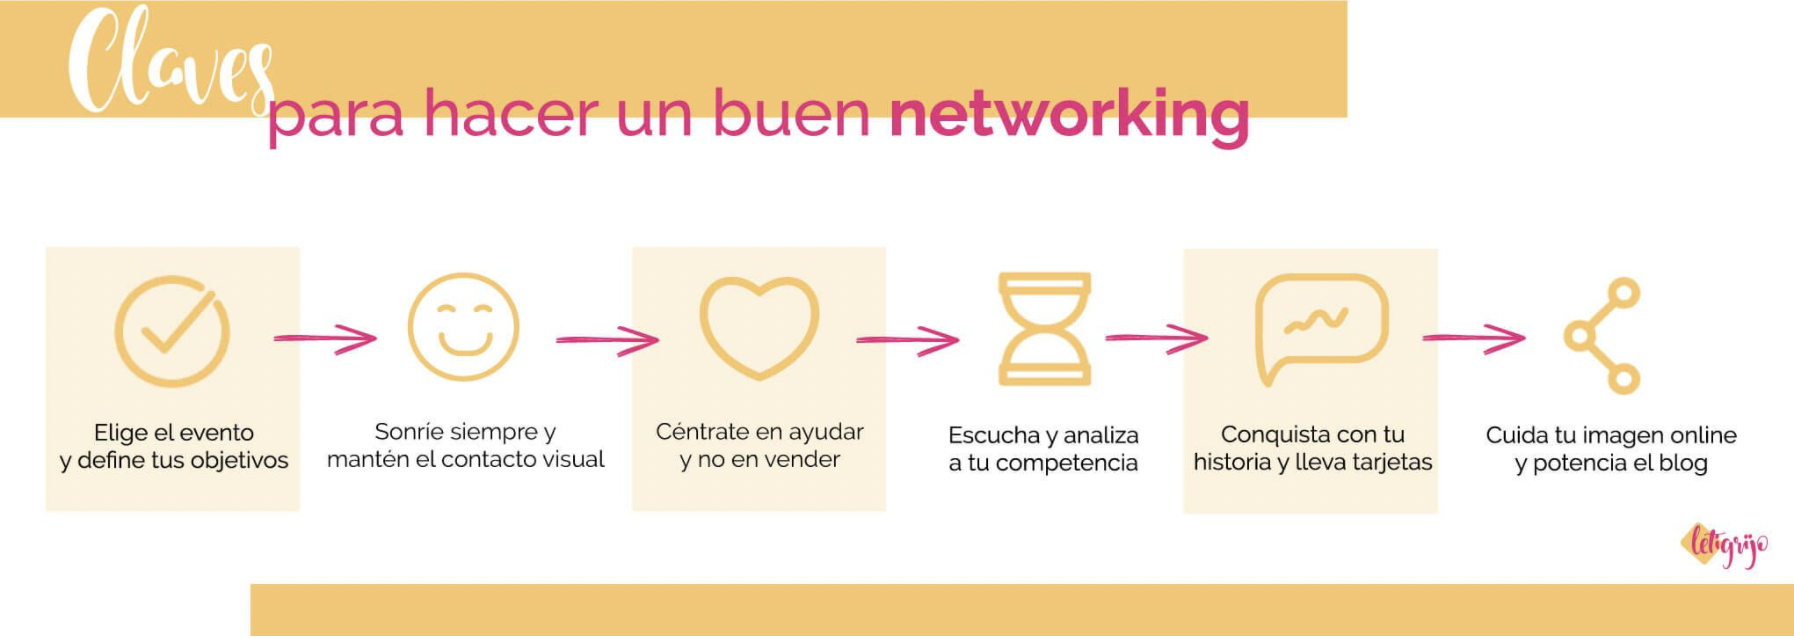 networking-claves